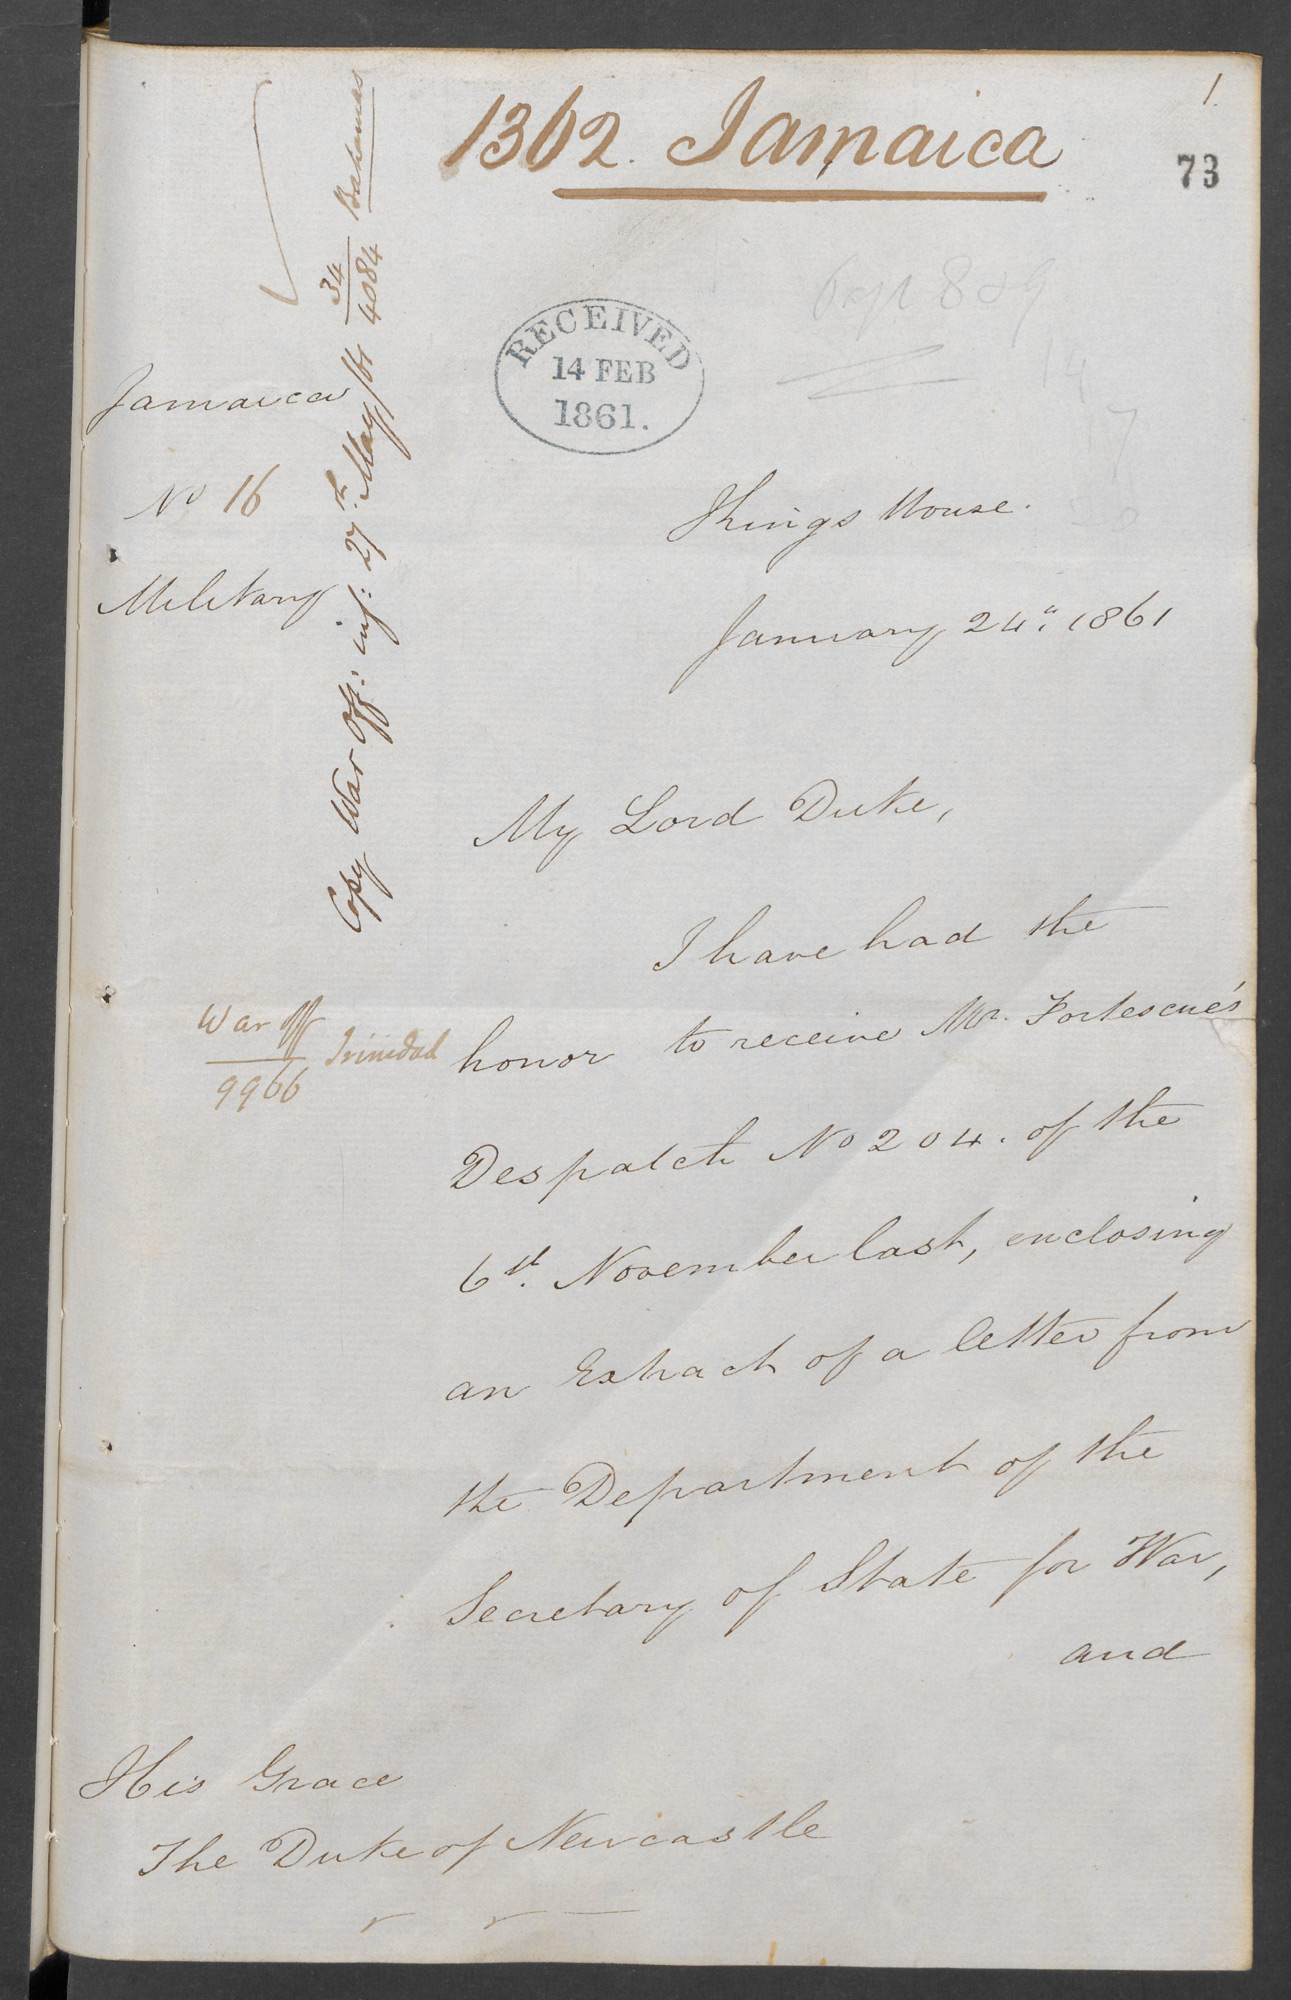 Charles Henry Darling, governor of Jamaica, to the Duke of Newcastle, Secretary of State for the Colonies, 24 Jan 1861